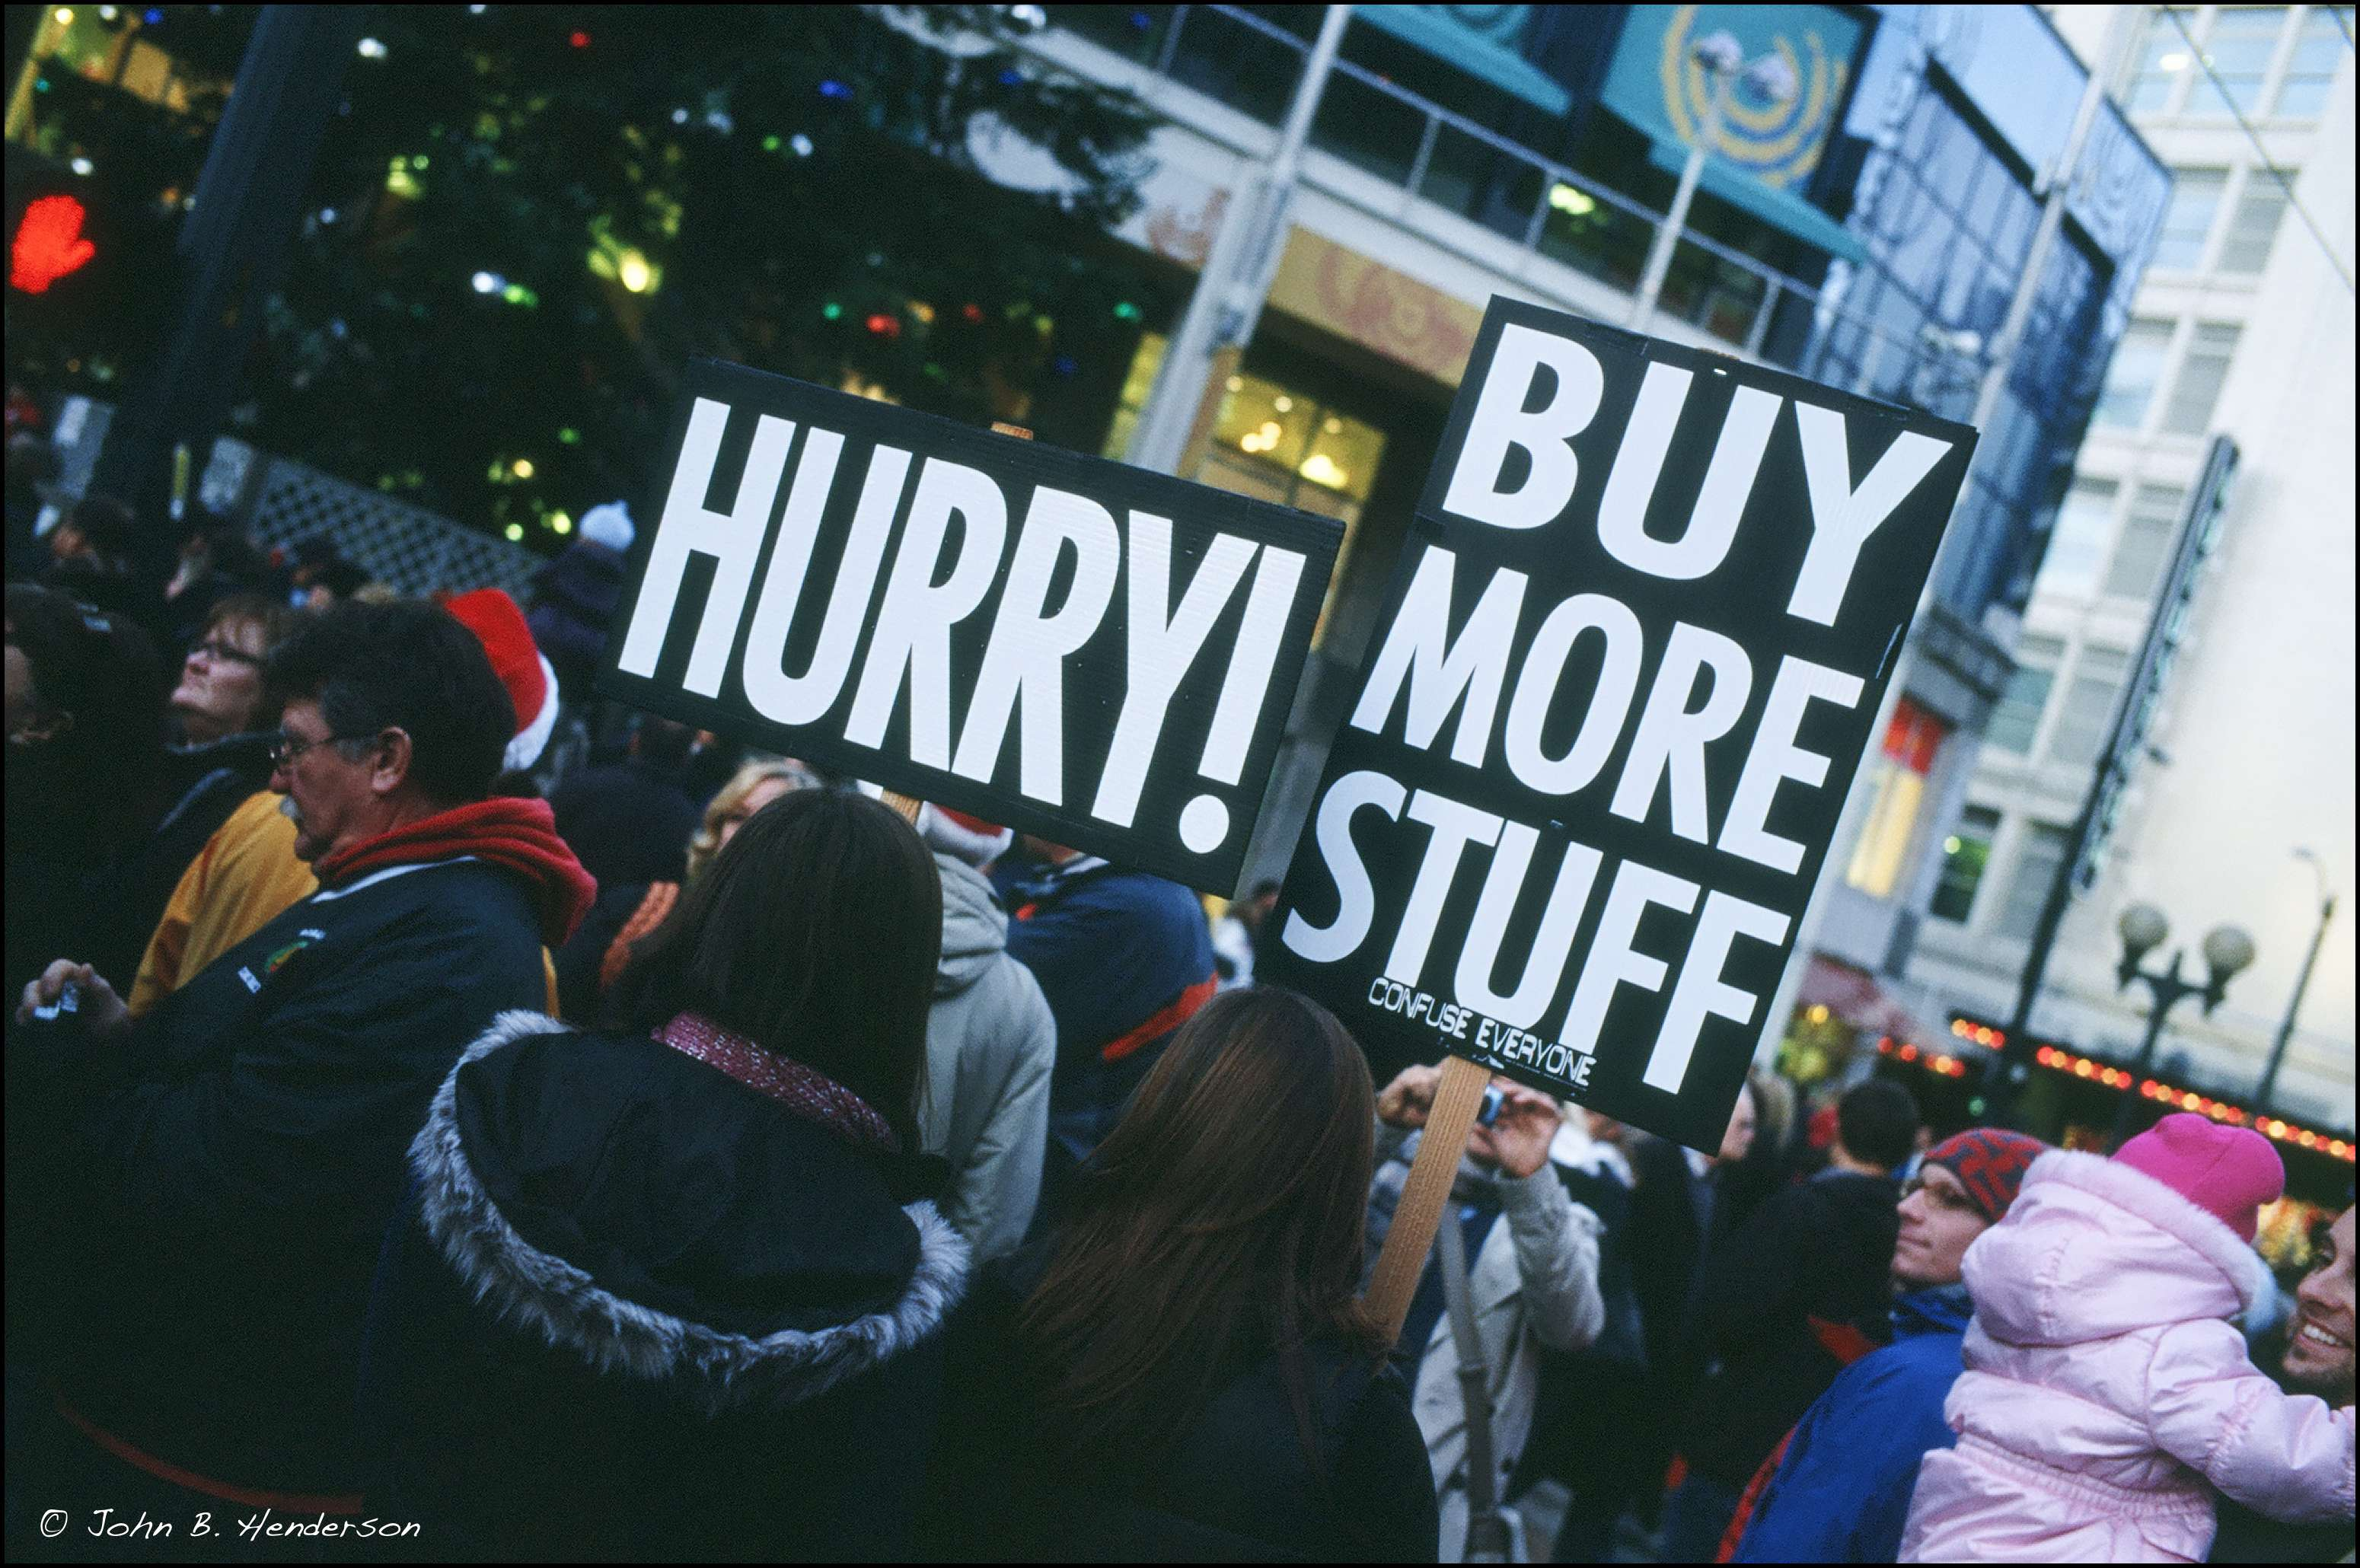 Cat's Pajamas and Other Signs of Holiday Endtimes